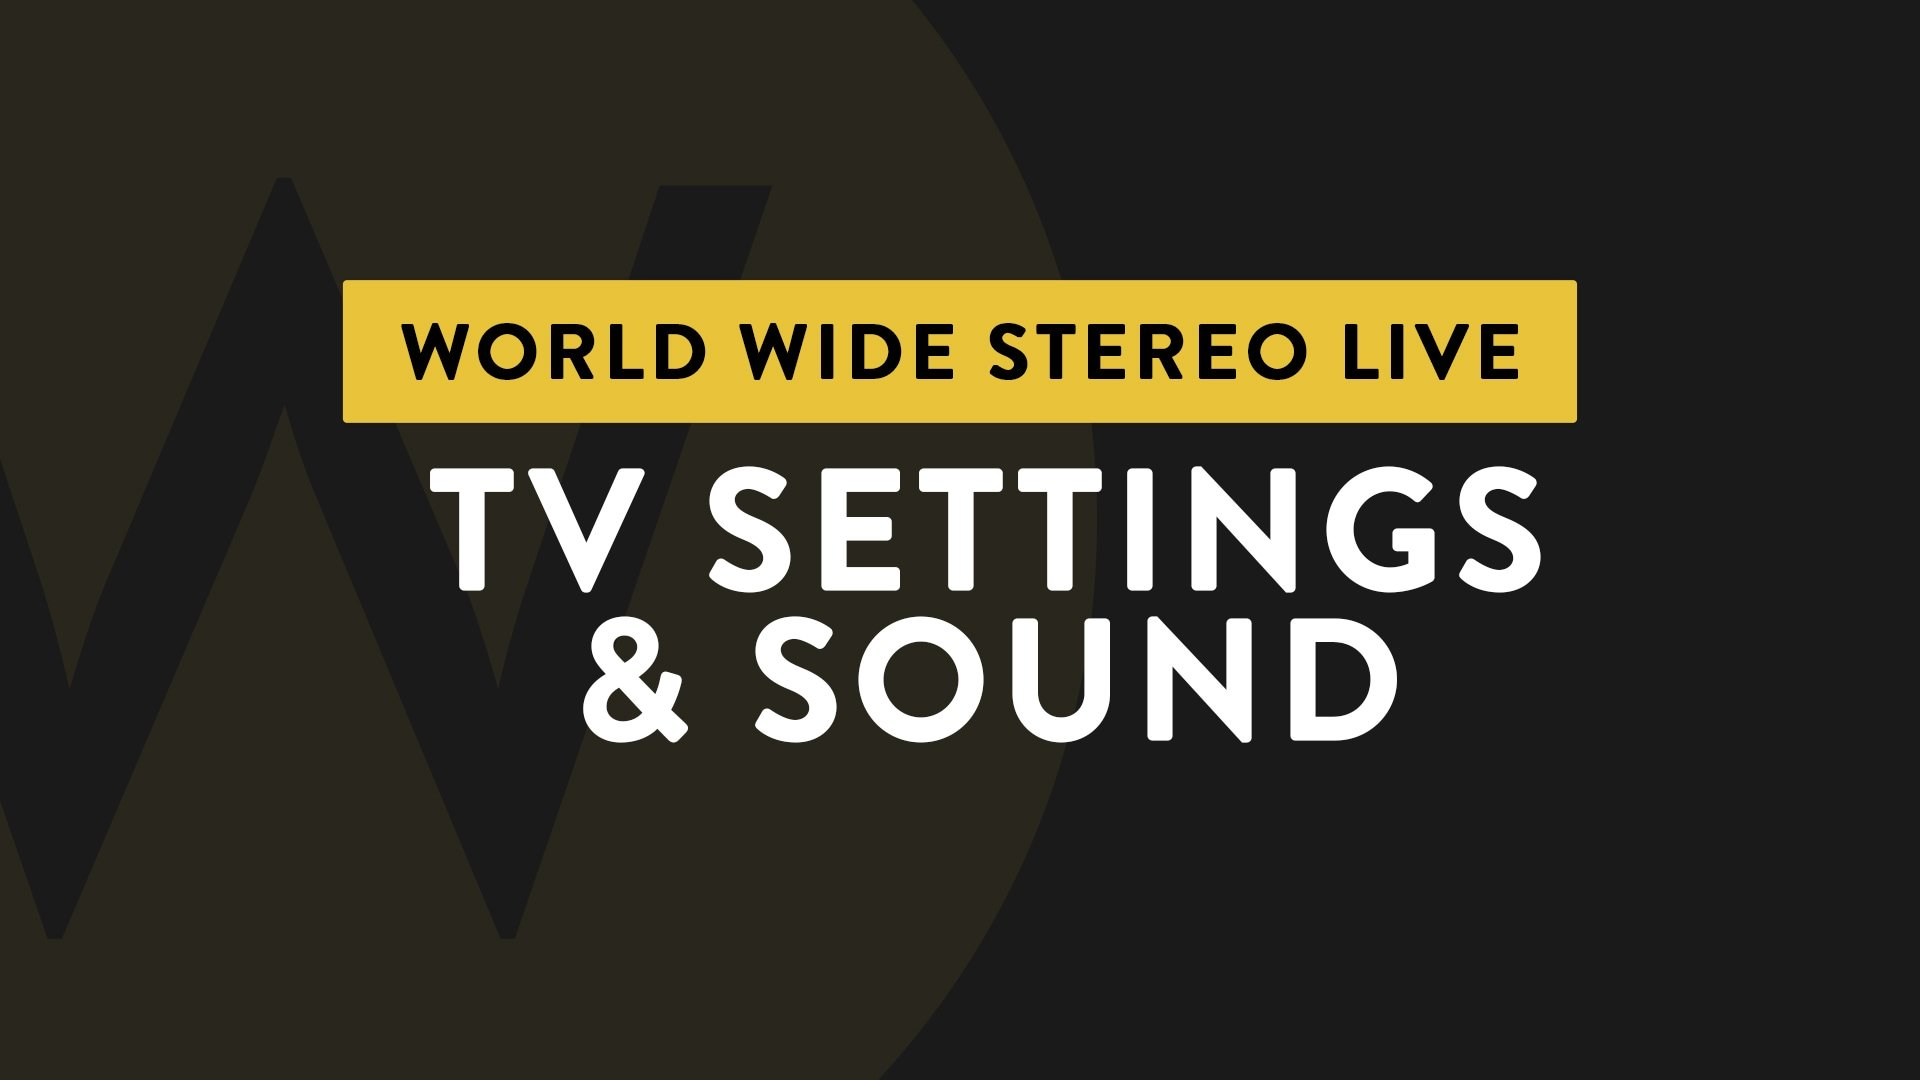 Ep. 1 TV Settings & Sound